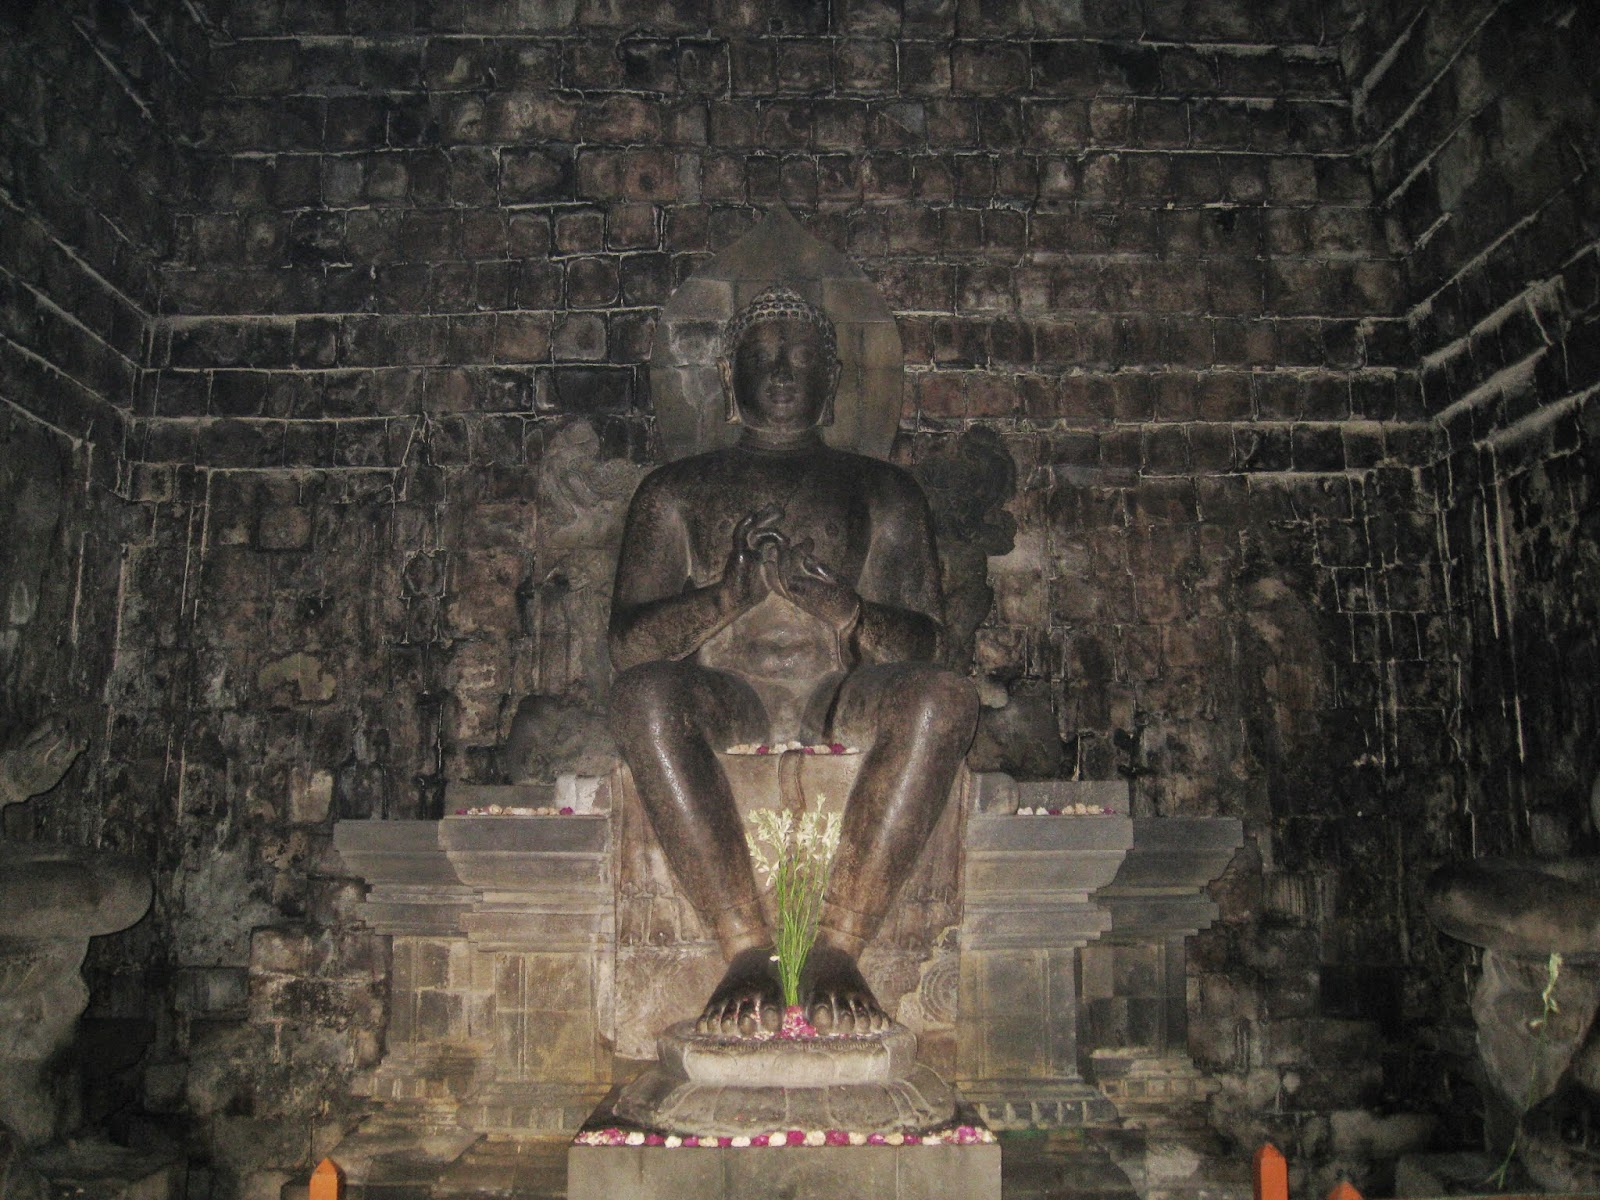 budha statue in mendut temple